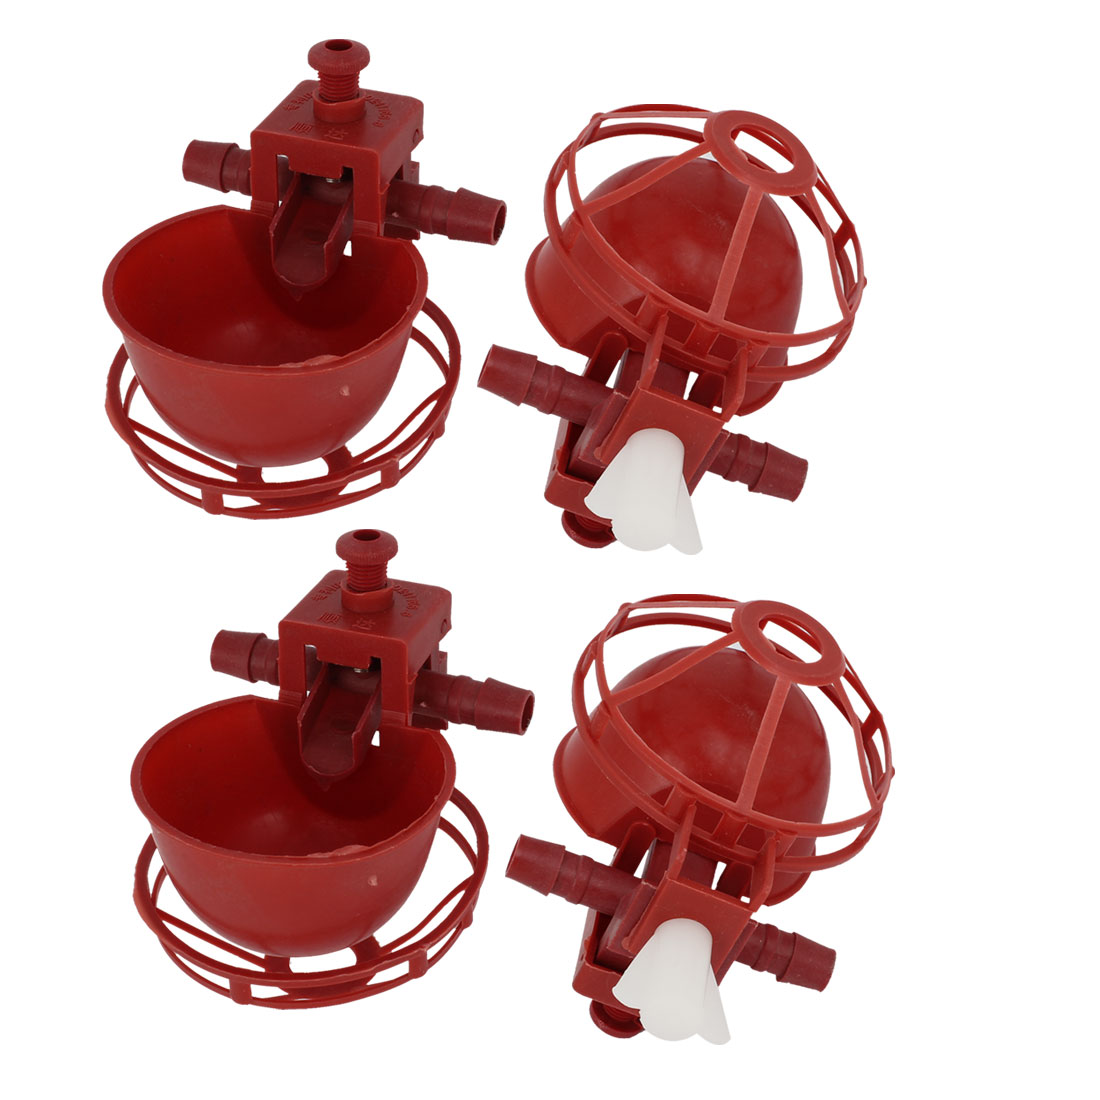 4pcs Red Plastic Automatic Fount Waterer Feeder Drinker Cup for Pet Bird Pigeon